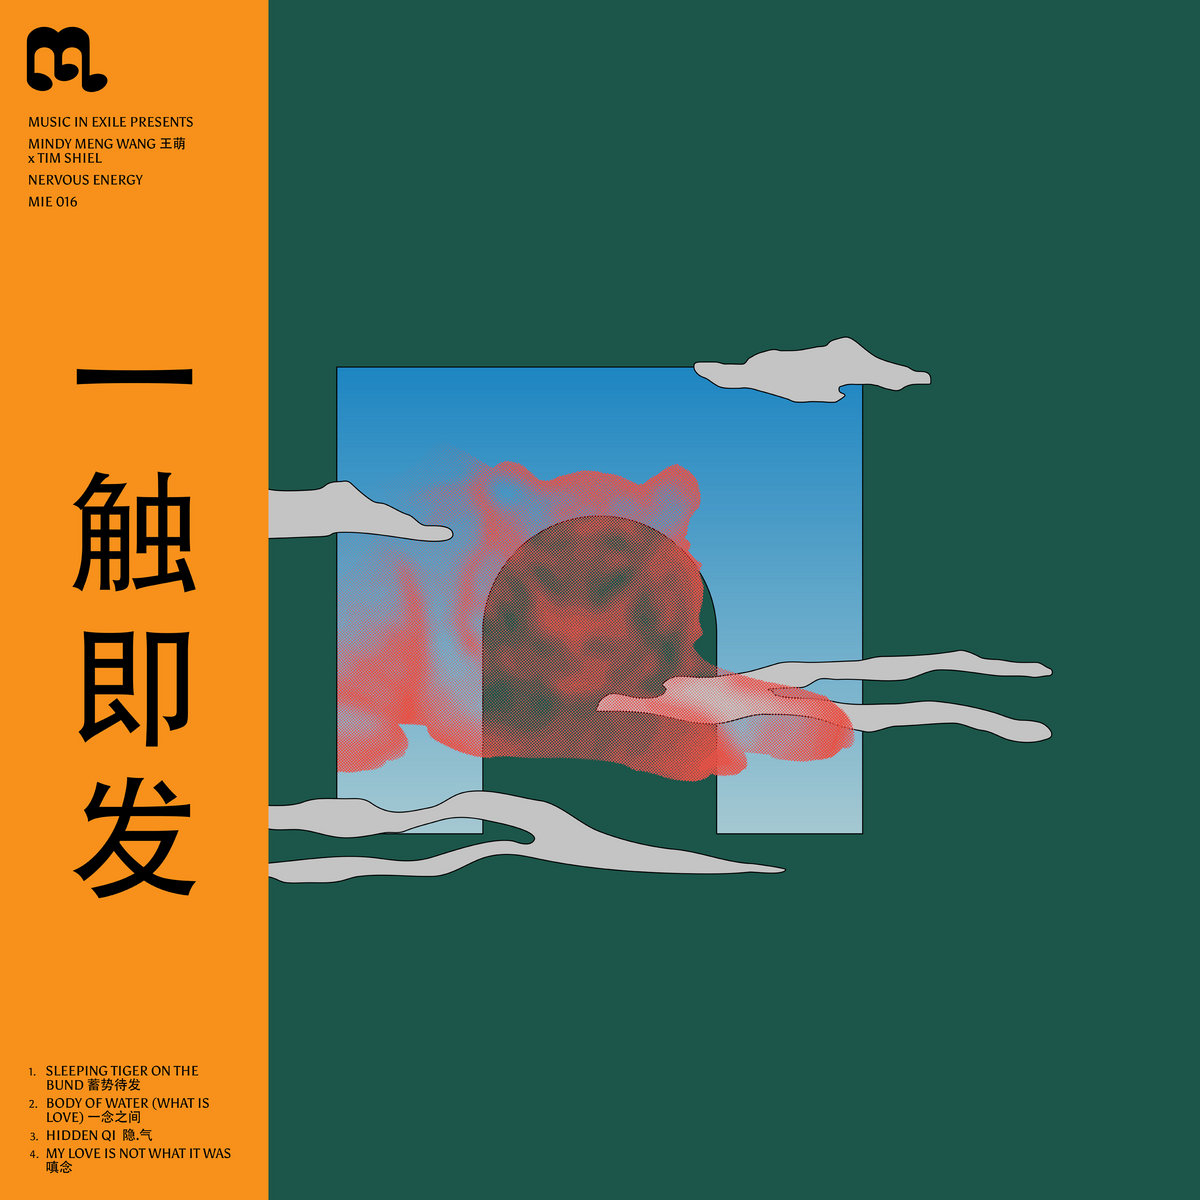 Mindy Meng Wang Tim Shiel new EP Nervous Energy Music In Exile